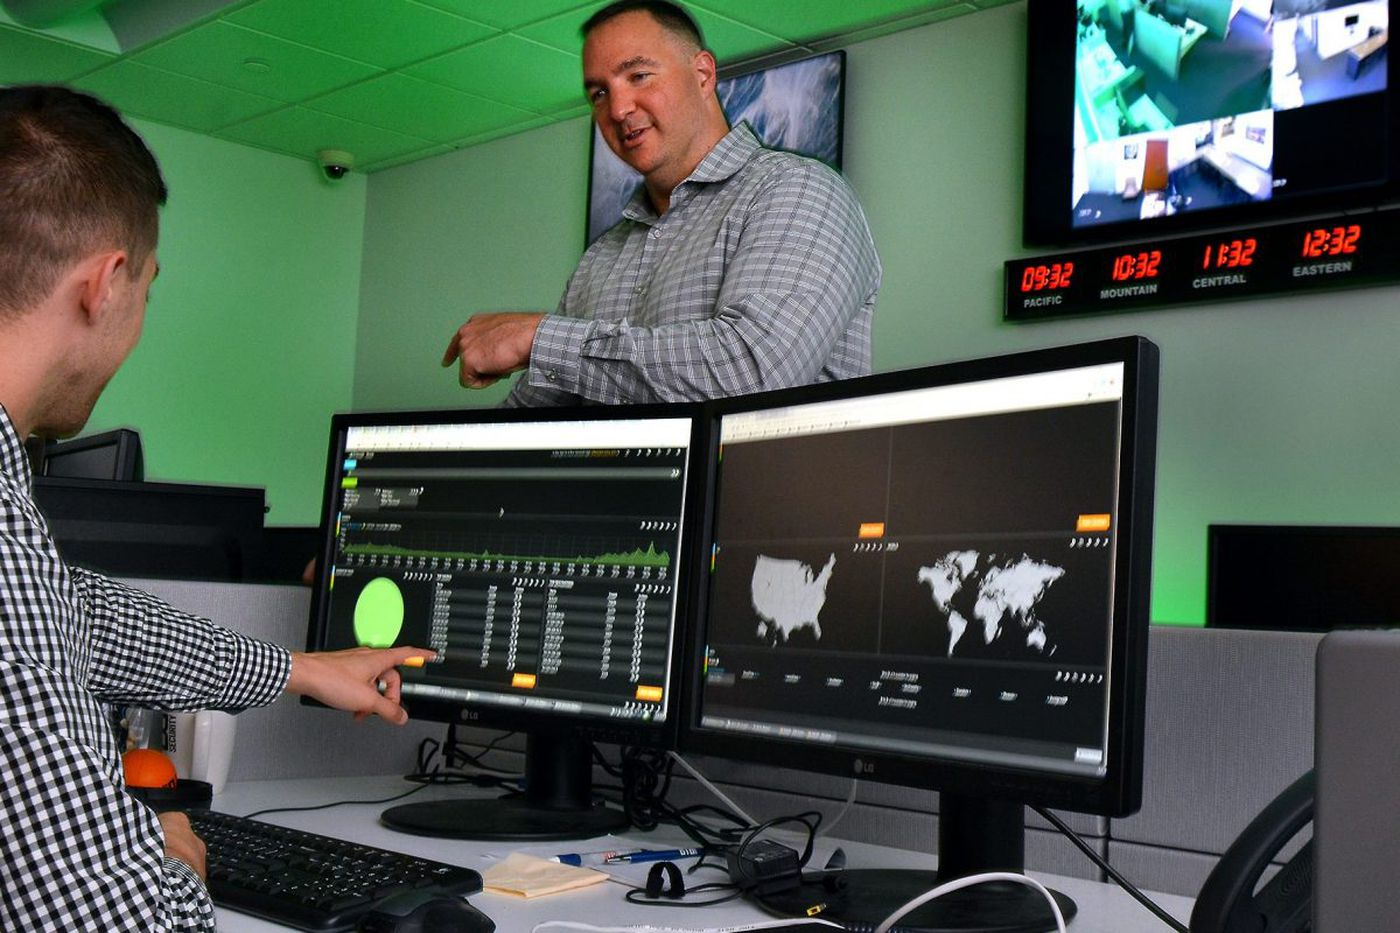 Cybercrime is the good and bad news for Bala Cynwyd's booming BTB Security